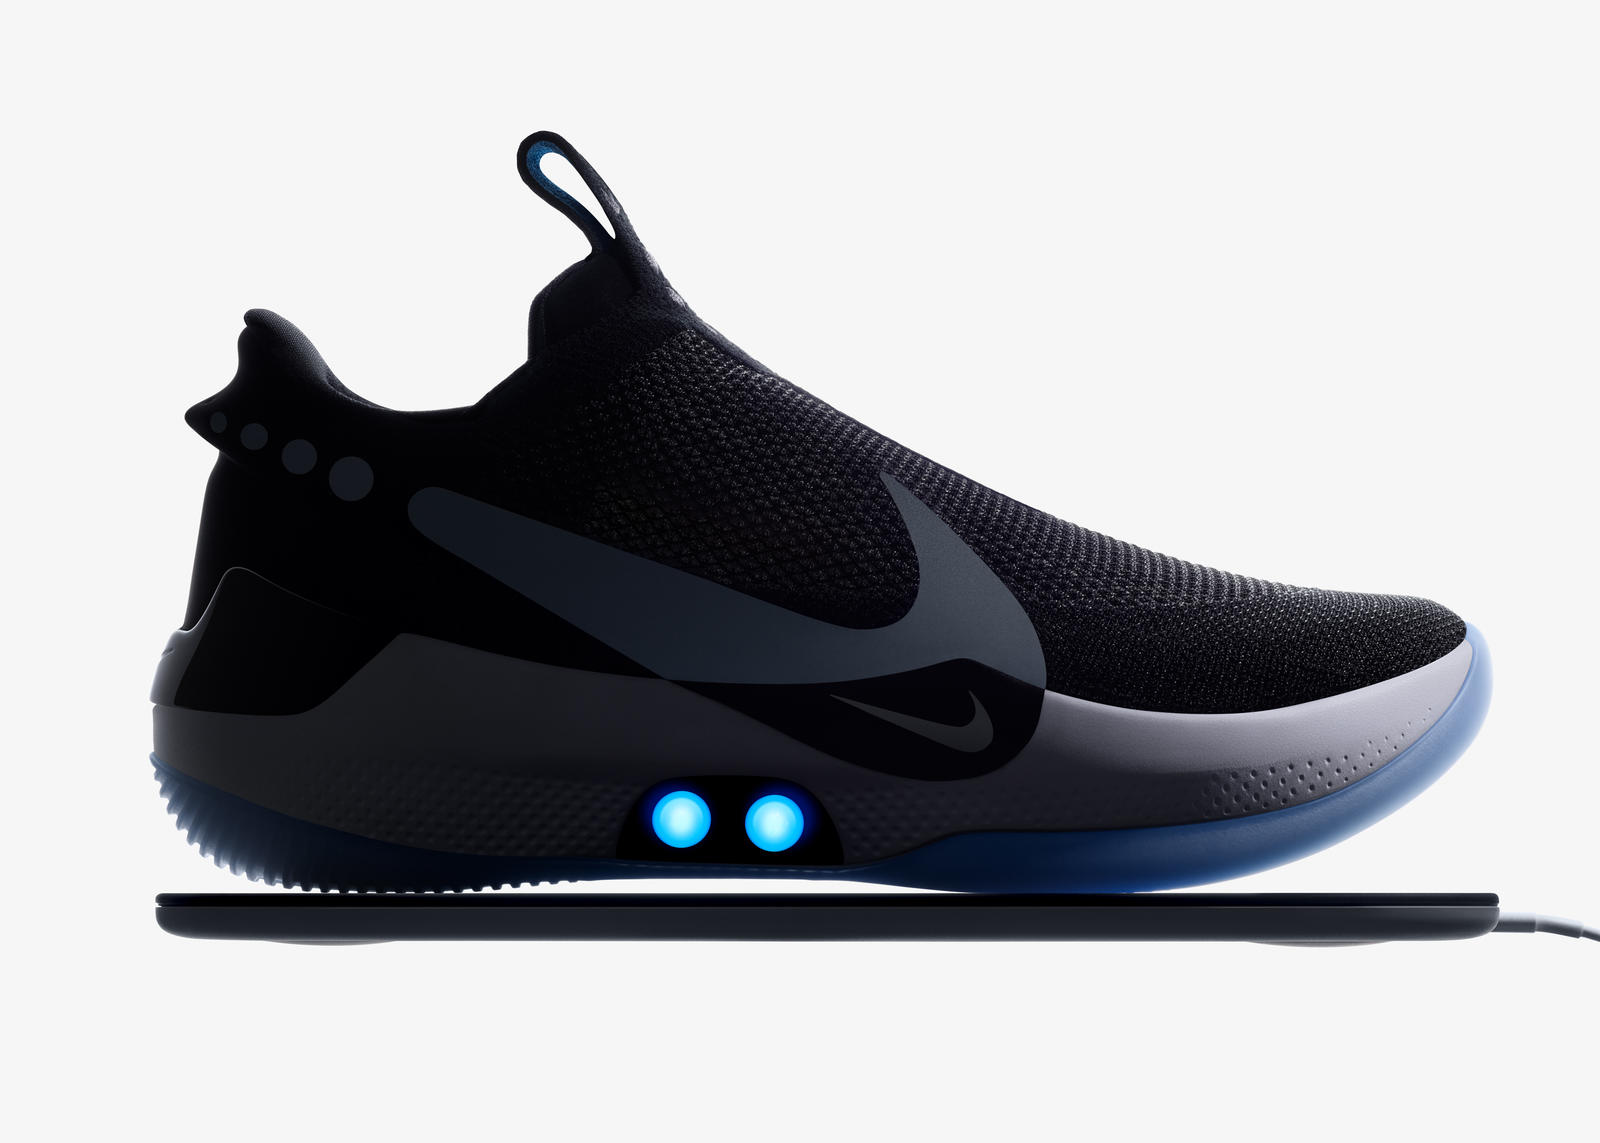 Nike launches the Nike Adapt BB